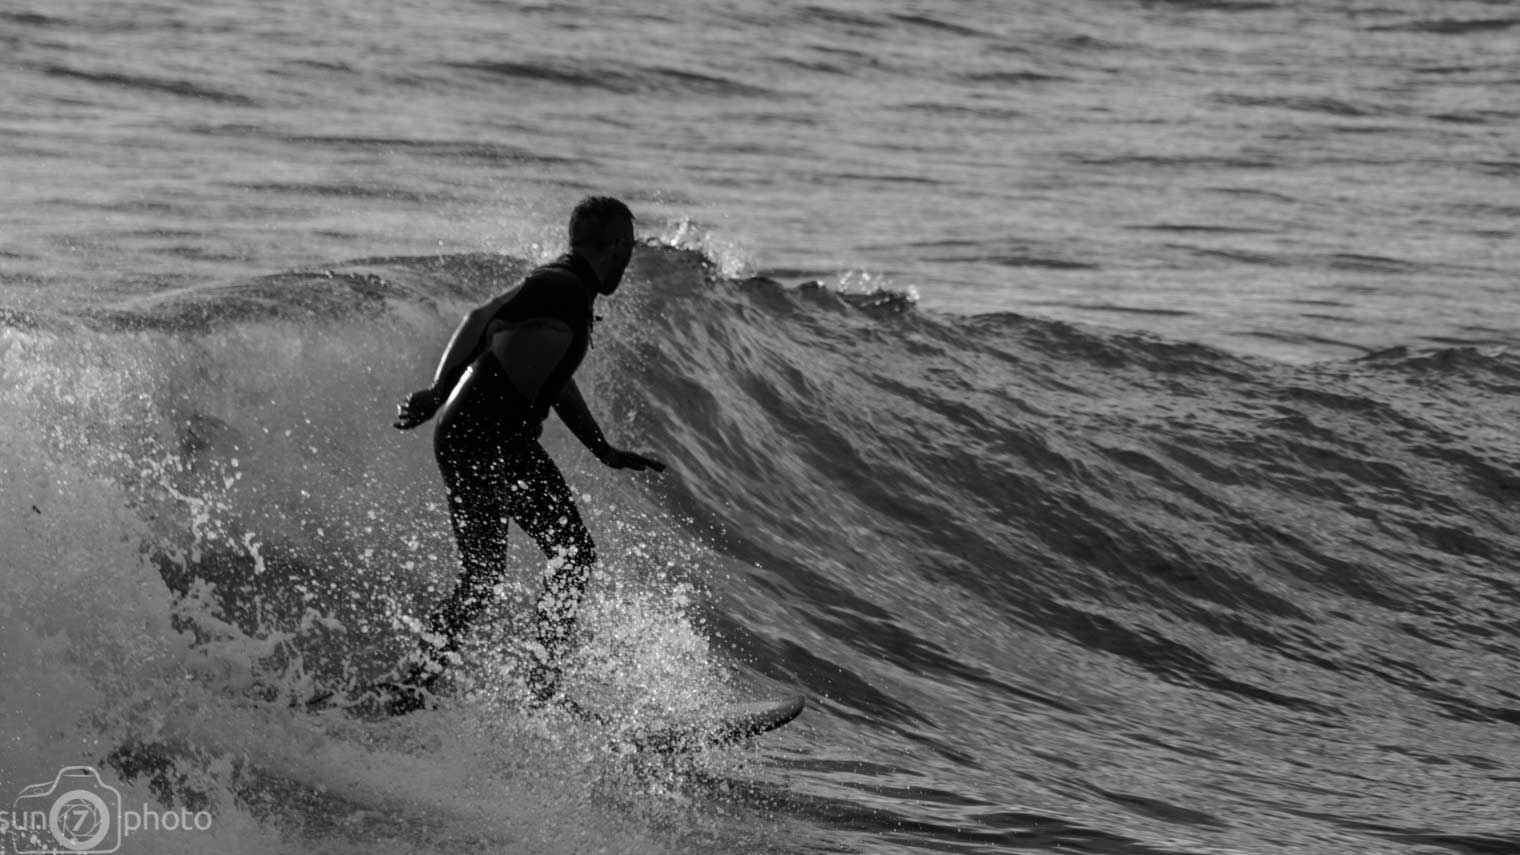 Winter Surf bnw N°3 - Arène Cros - La Ciotat - France